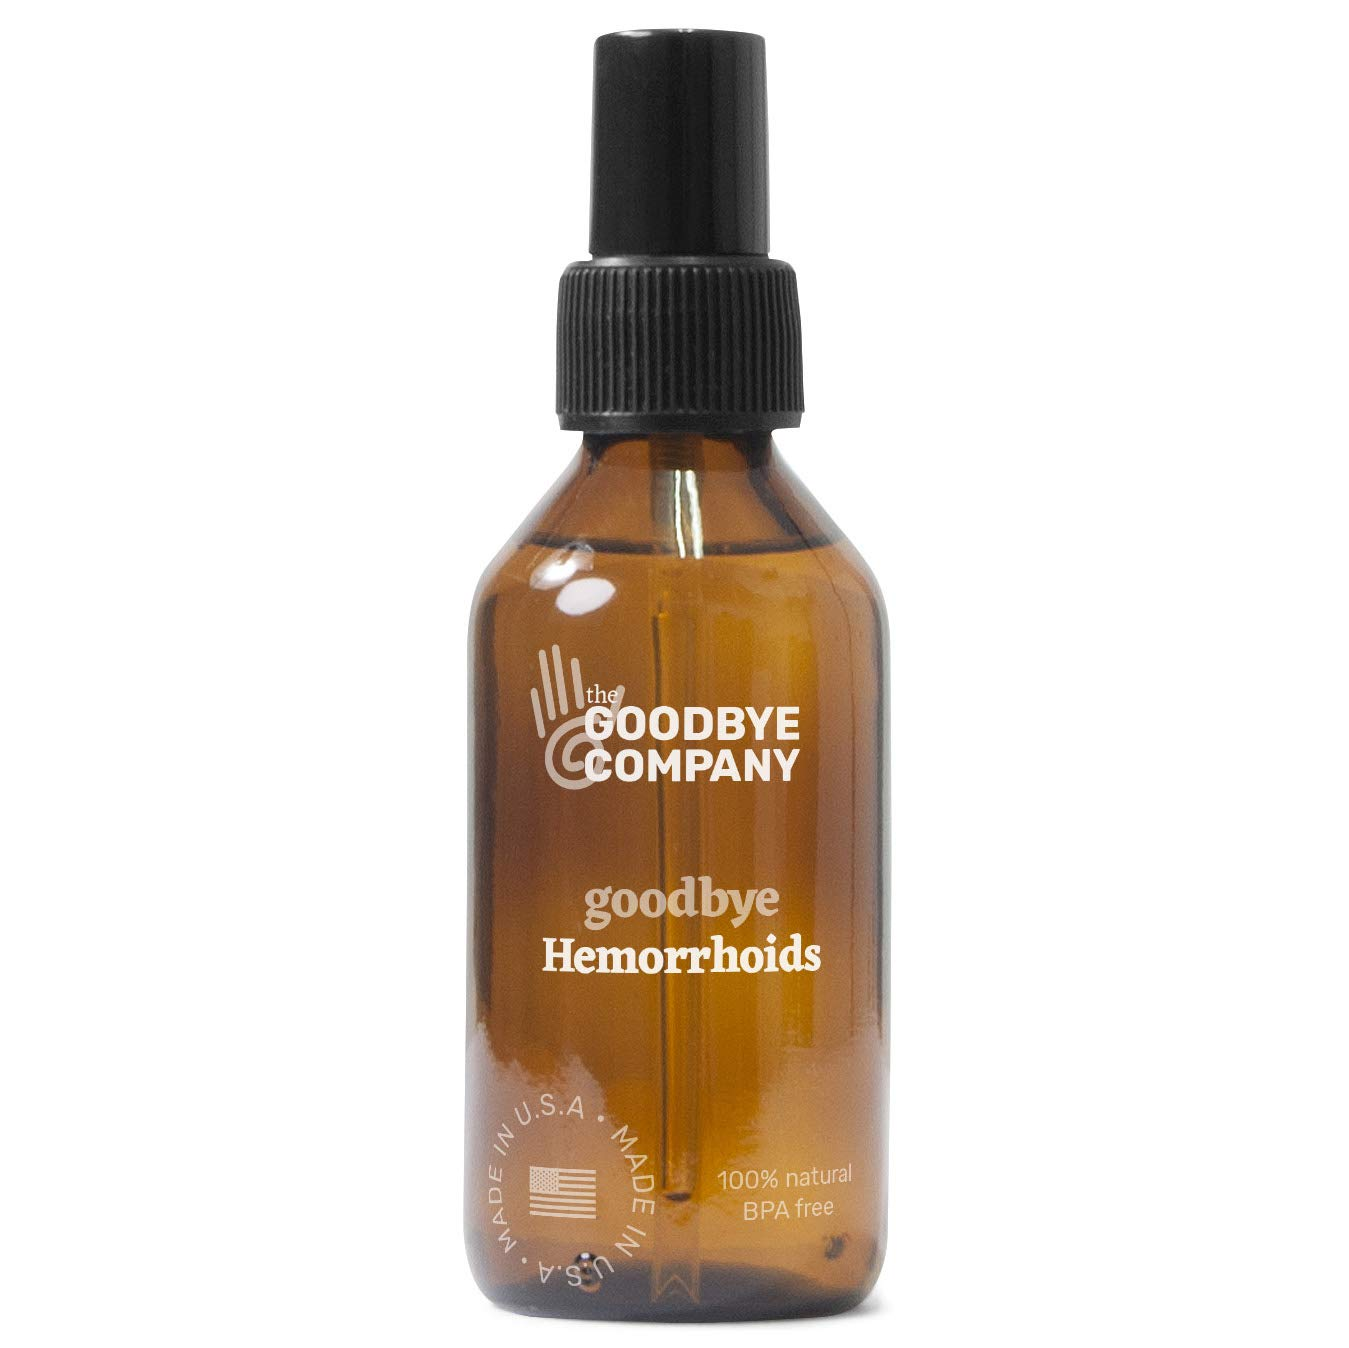 GoodBye Hemorrhoids Natural Vegan Hemorrhoid Healing Serum by GoodBye Styes